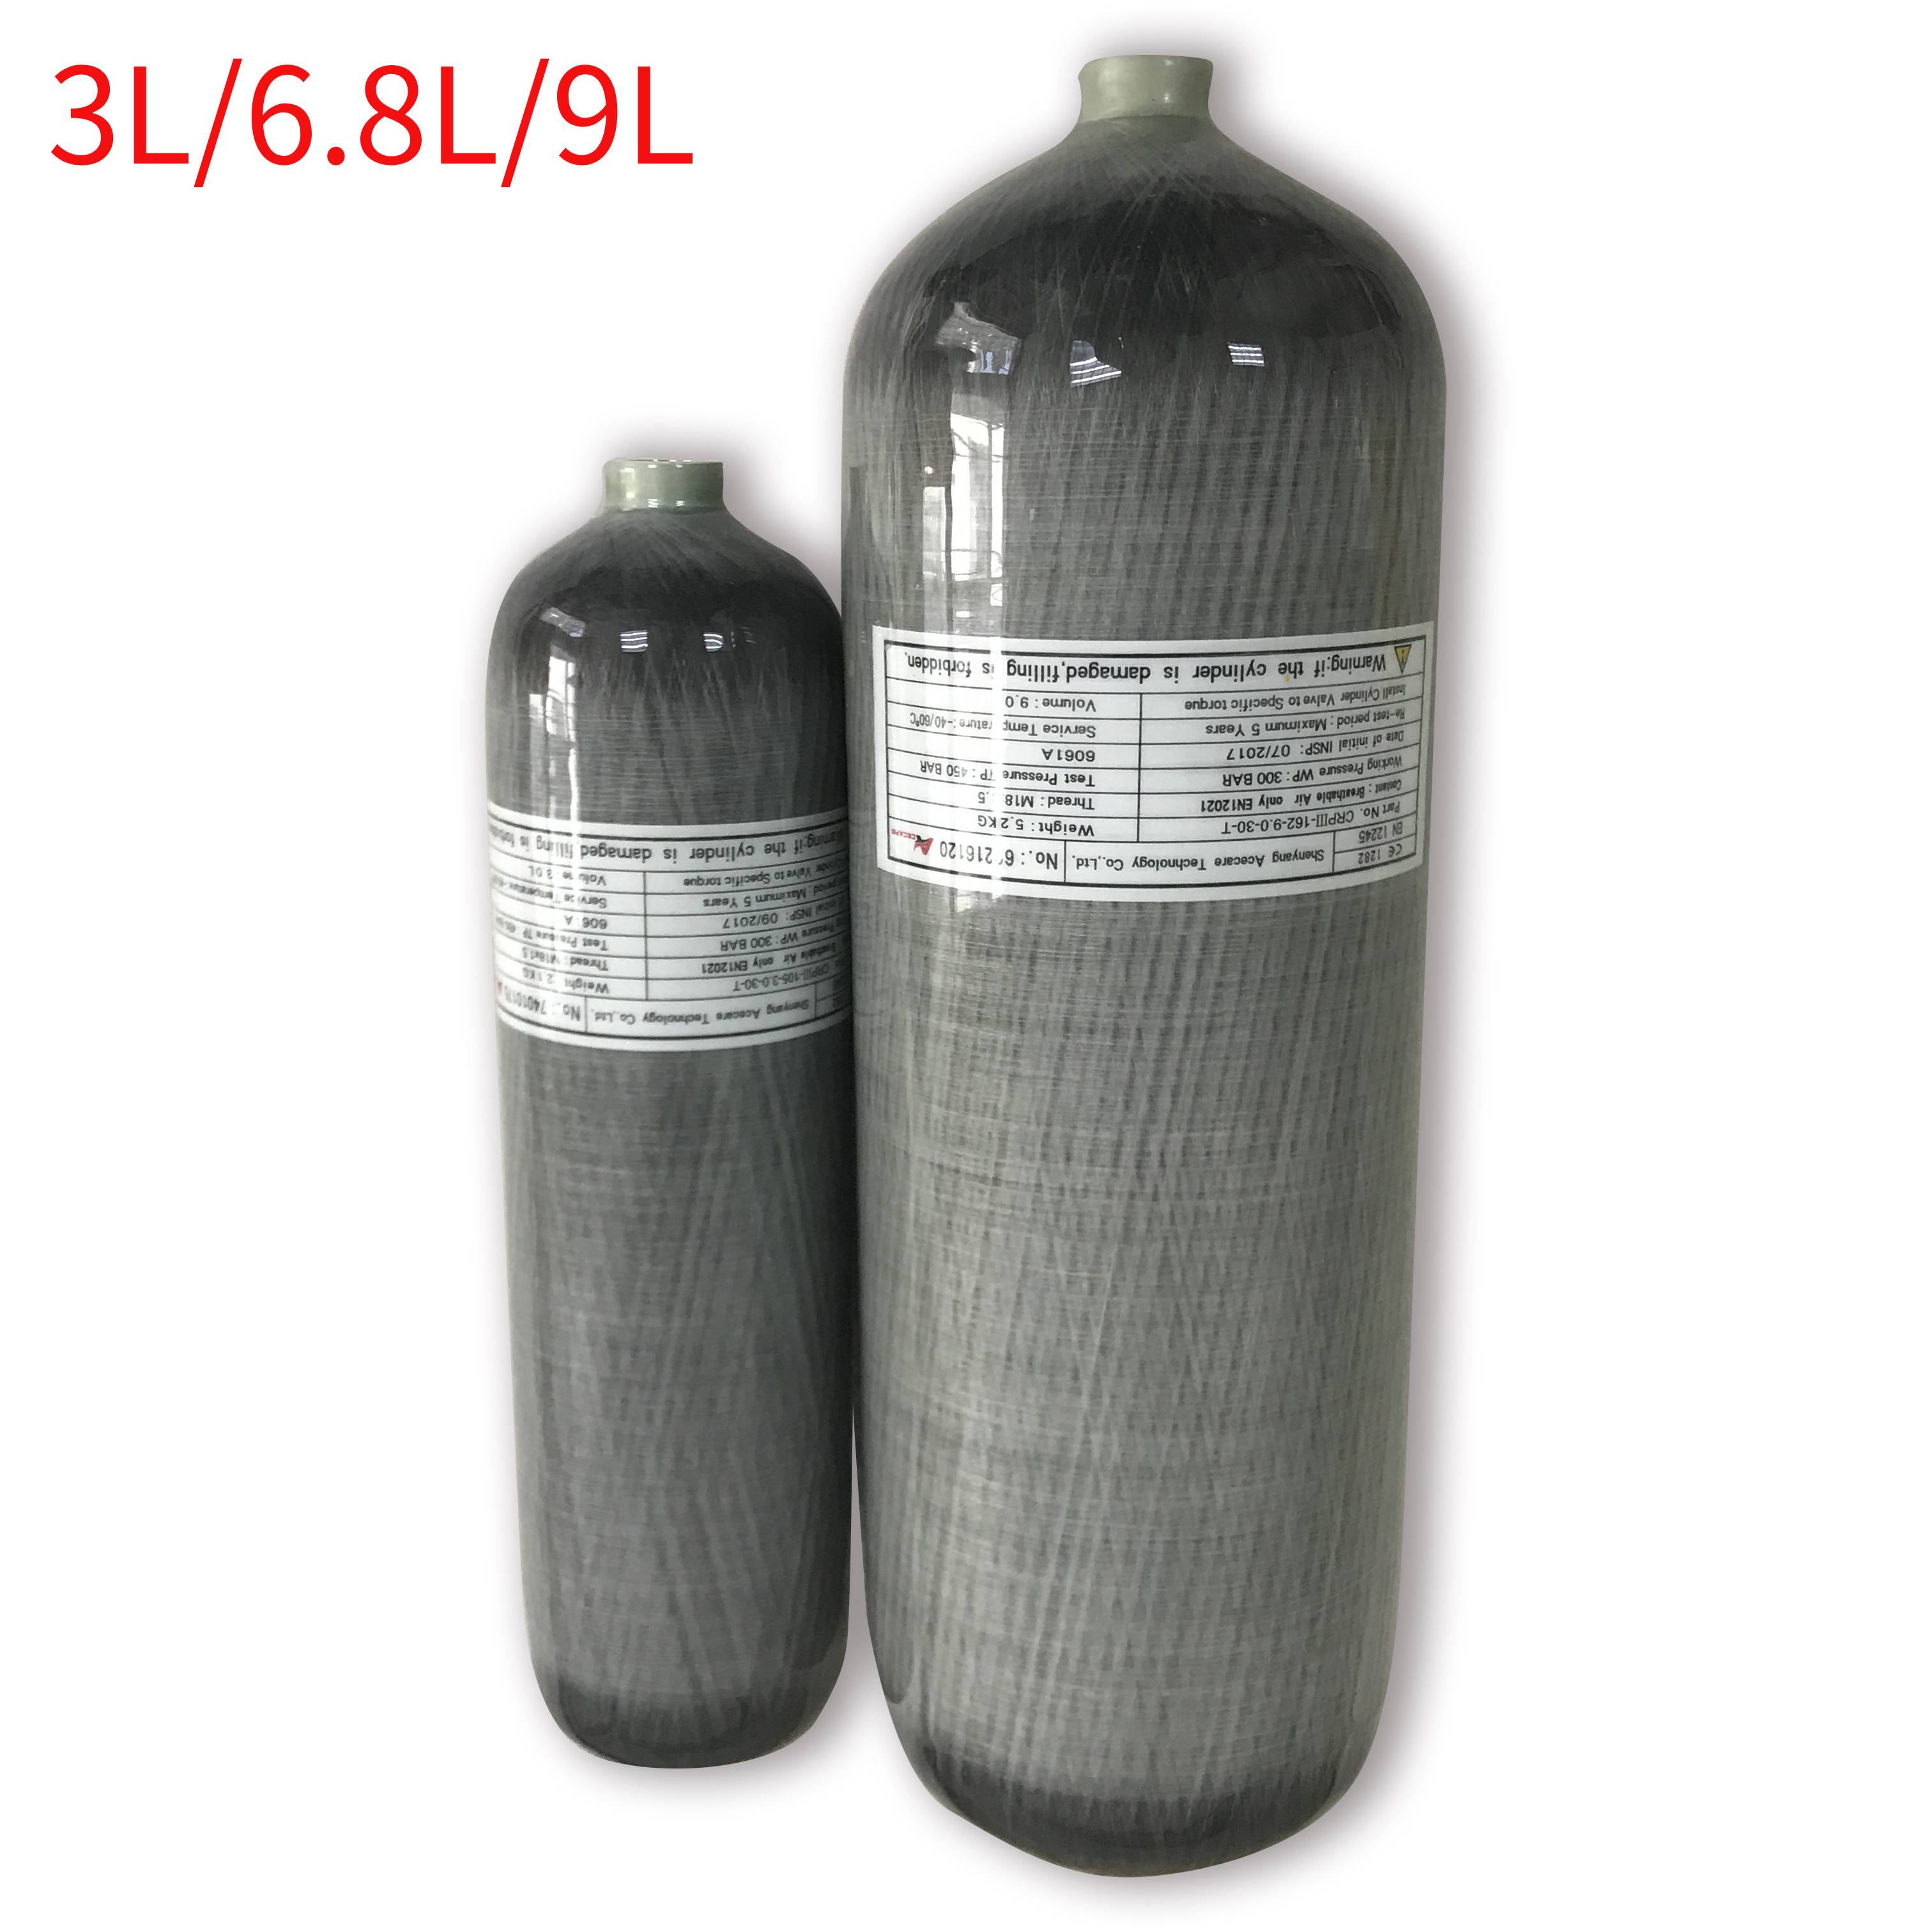 AC103301 4500 Psi Pcp Tank Compressed Air Rifle 3L/6.8L/9L High Pressure Cylinder For Paintball Compressed Air Gun 5 5 Condor